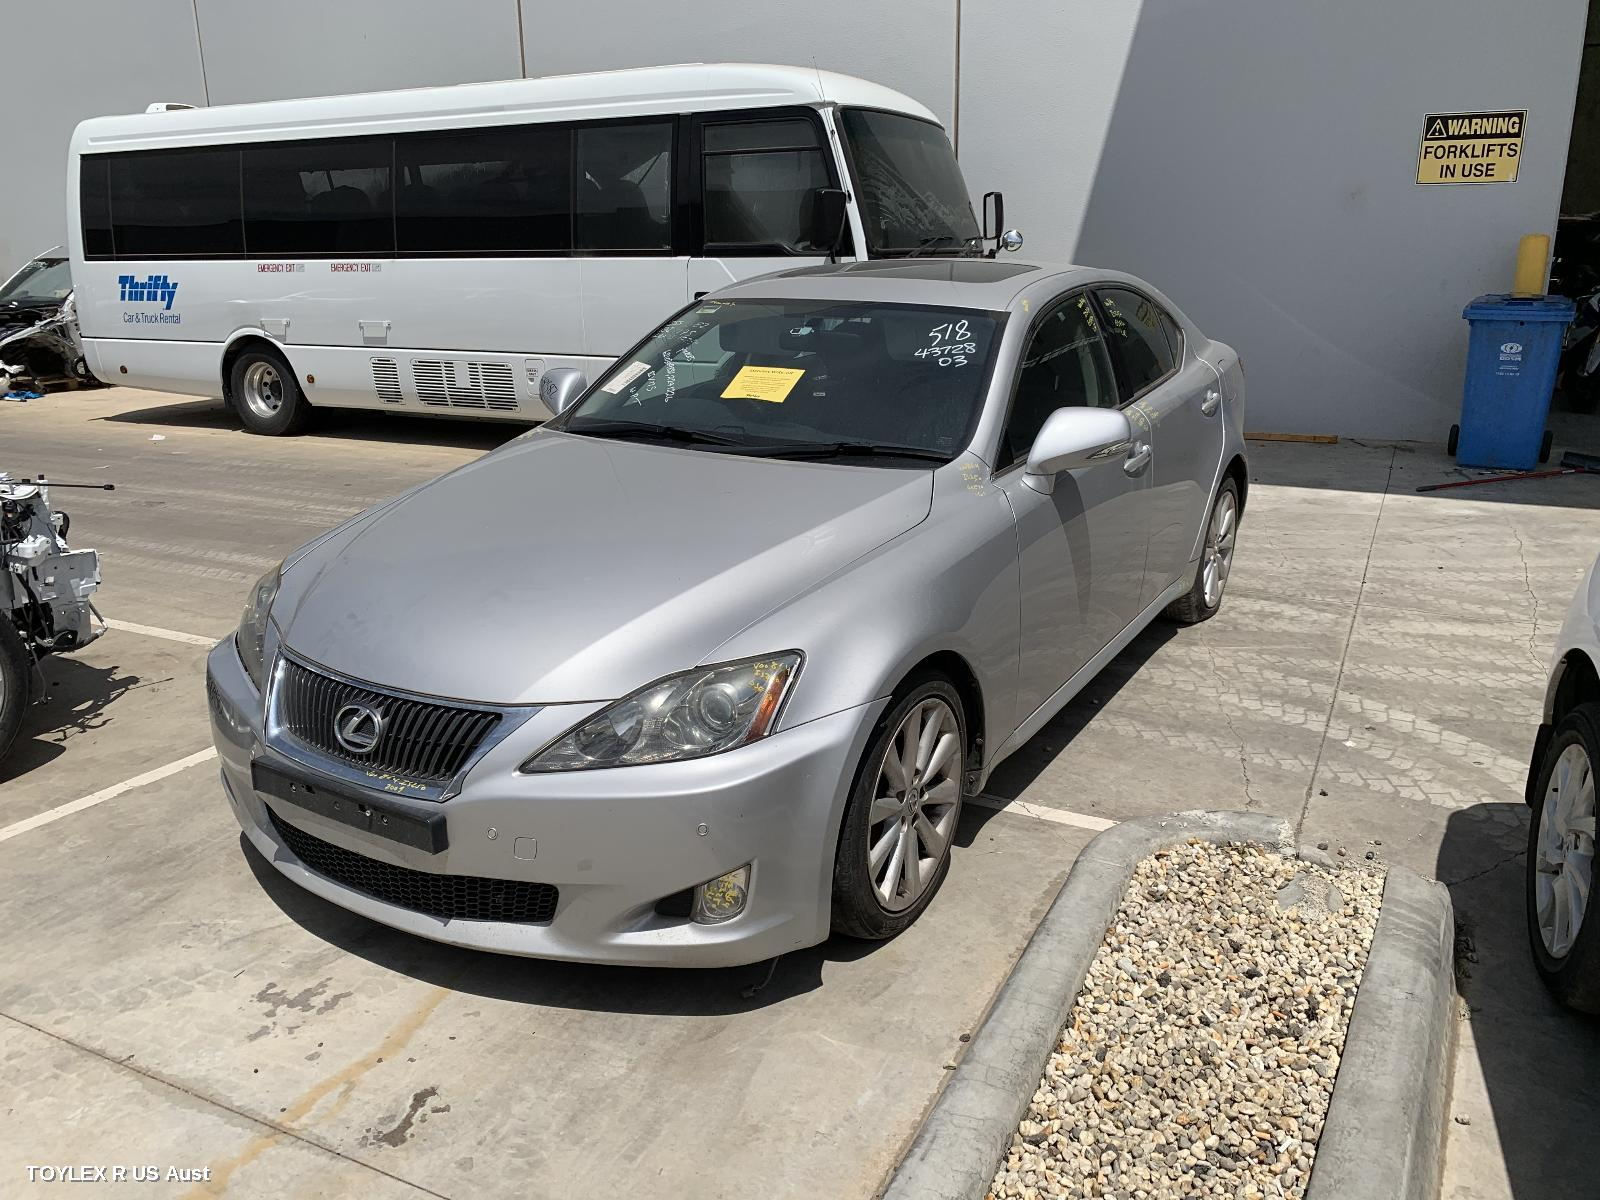 Lexus IS250 GSE20R PRESTIGE 4GR-FSE 2.5L Engine Automatic RWD Transmission 11/05 - 06/13